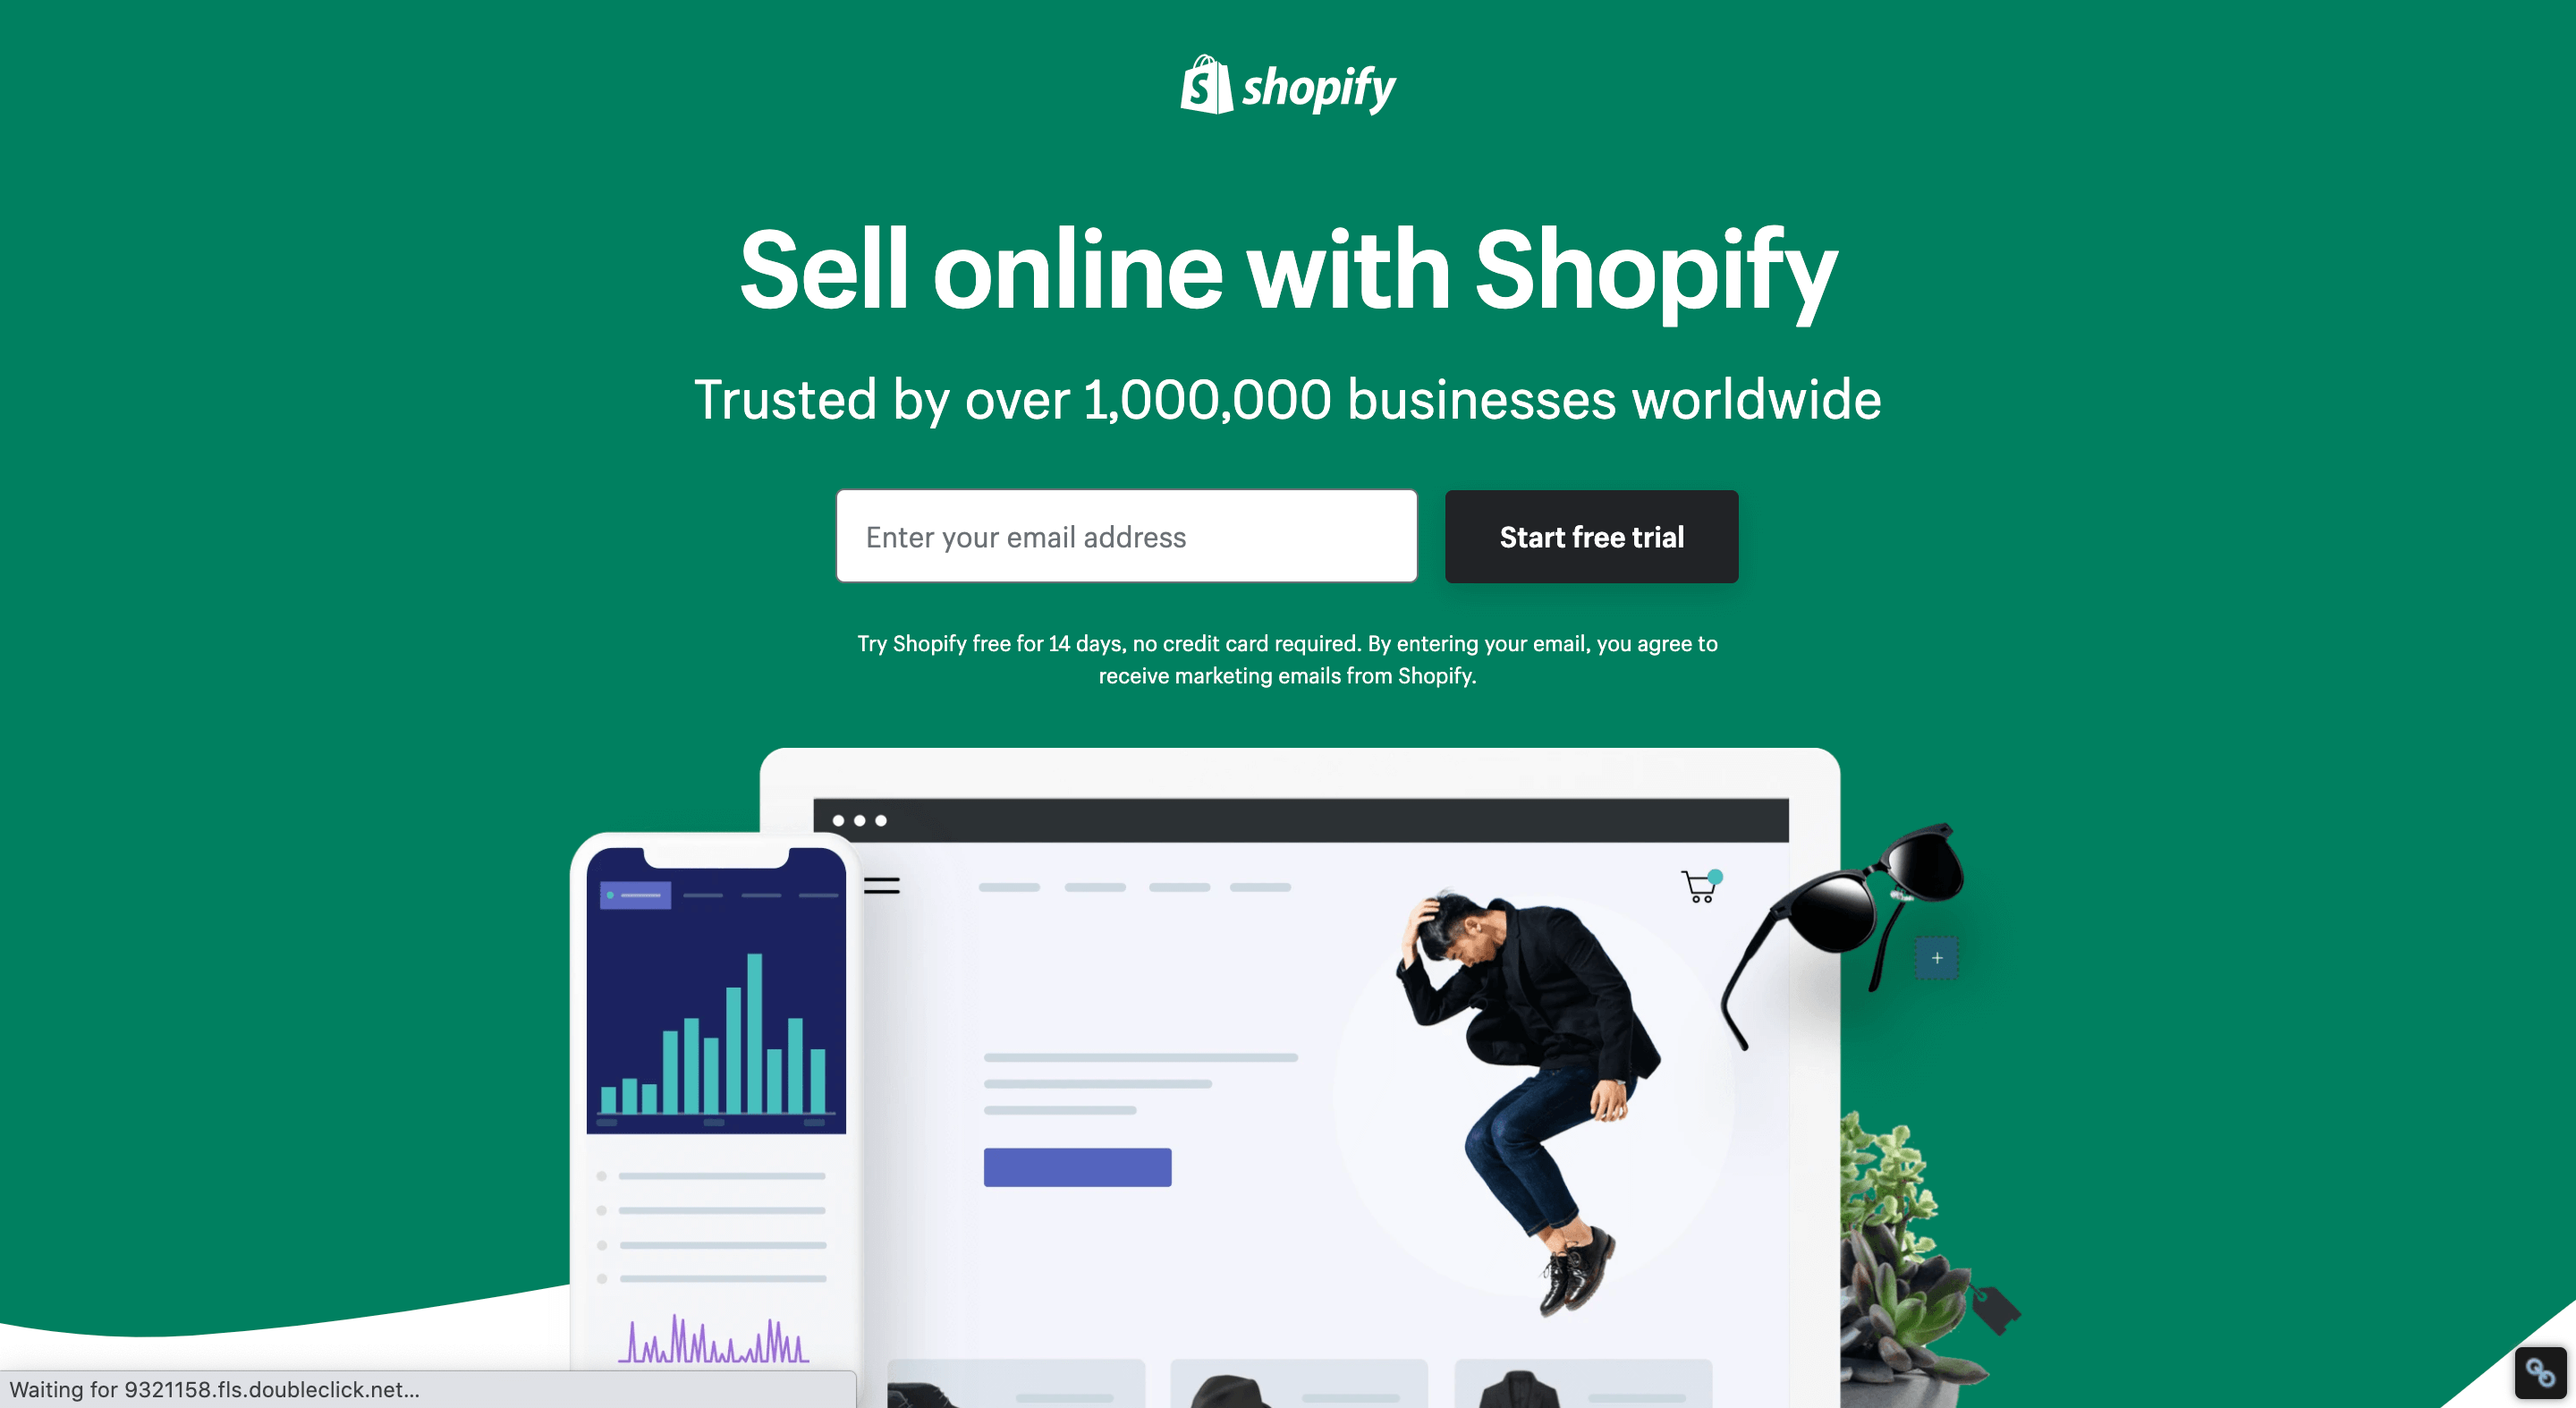 Finding And FilIng Your Shopify 1099-K Made Easy